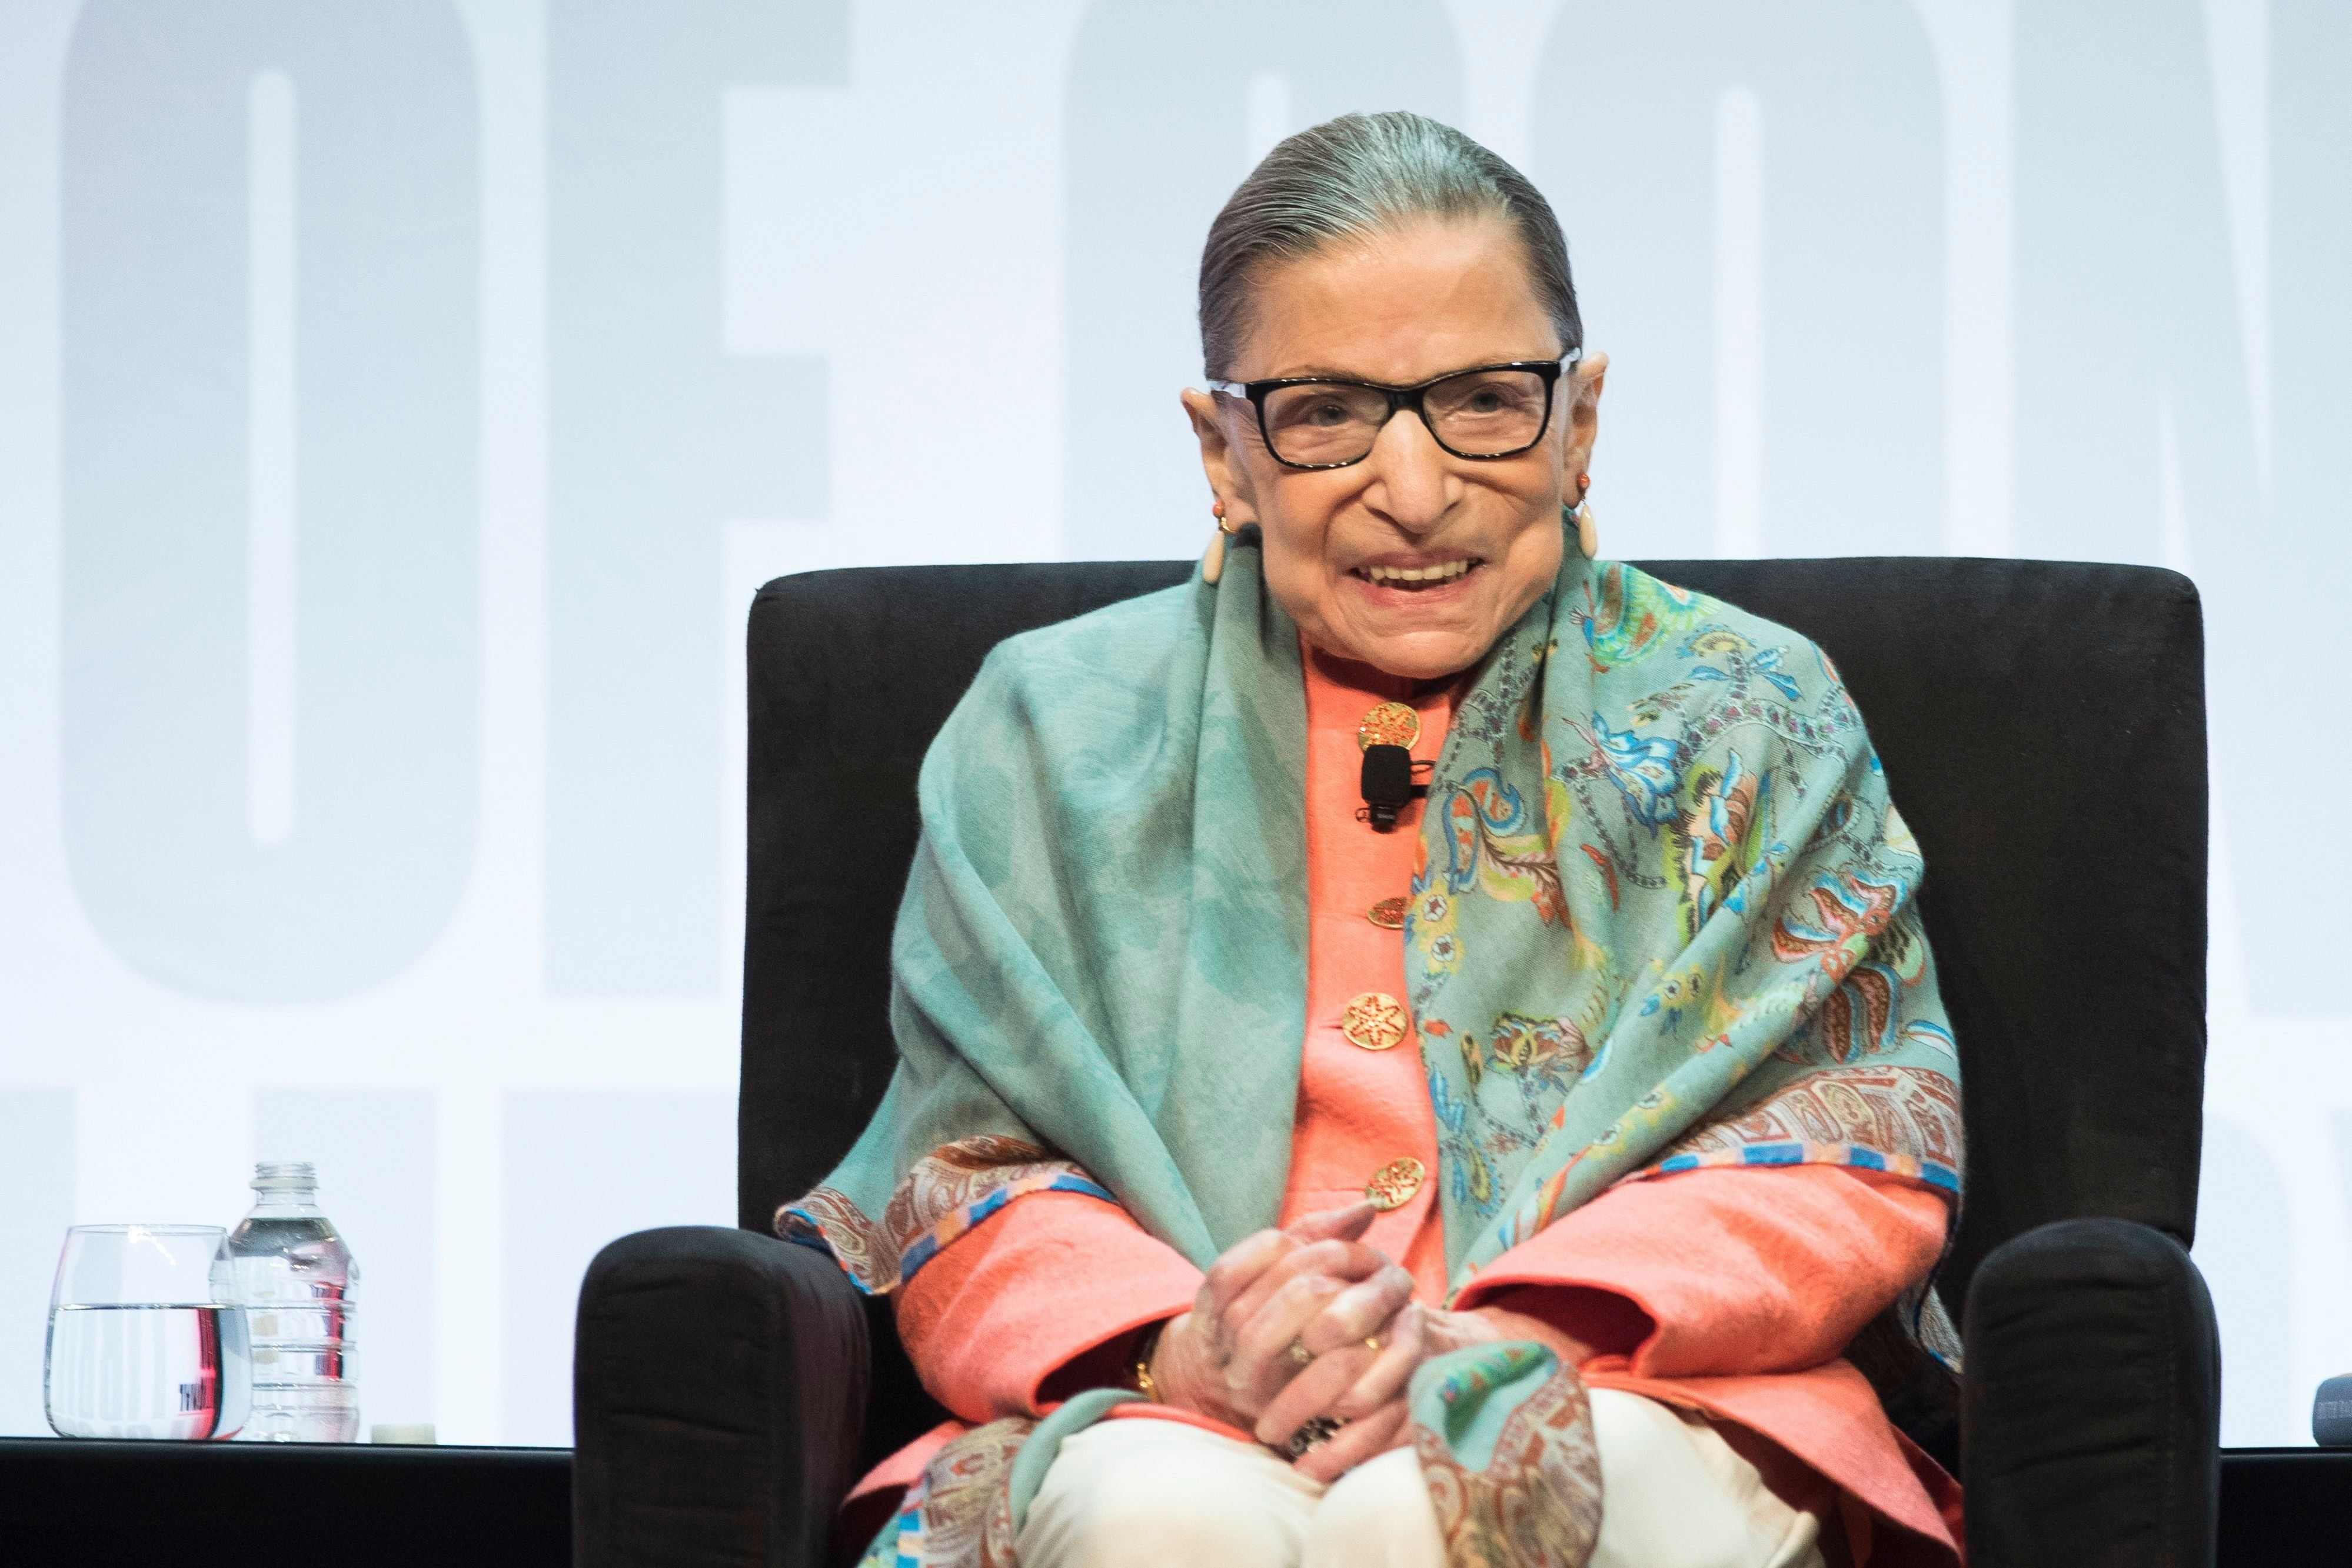 Mandatory Credit: Photo by Cliff Owen/AP/Shutterstock (10376282s) Supreme Court Associate Justice Ruth Bader Ginsburg speaks at the Library of Congress National Book Festival in Washington SCOTUS Ginsberg Book Festival, Washington, USA - 31 Aug 2019